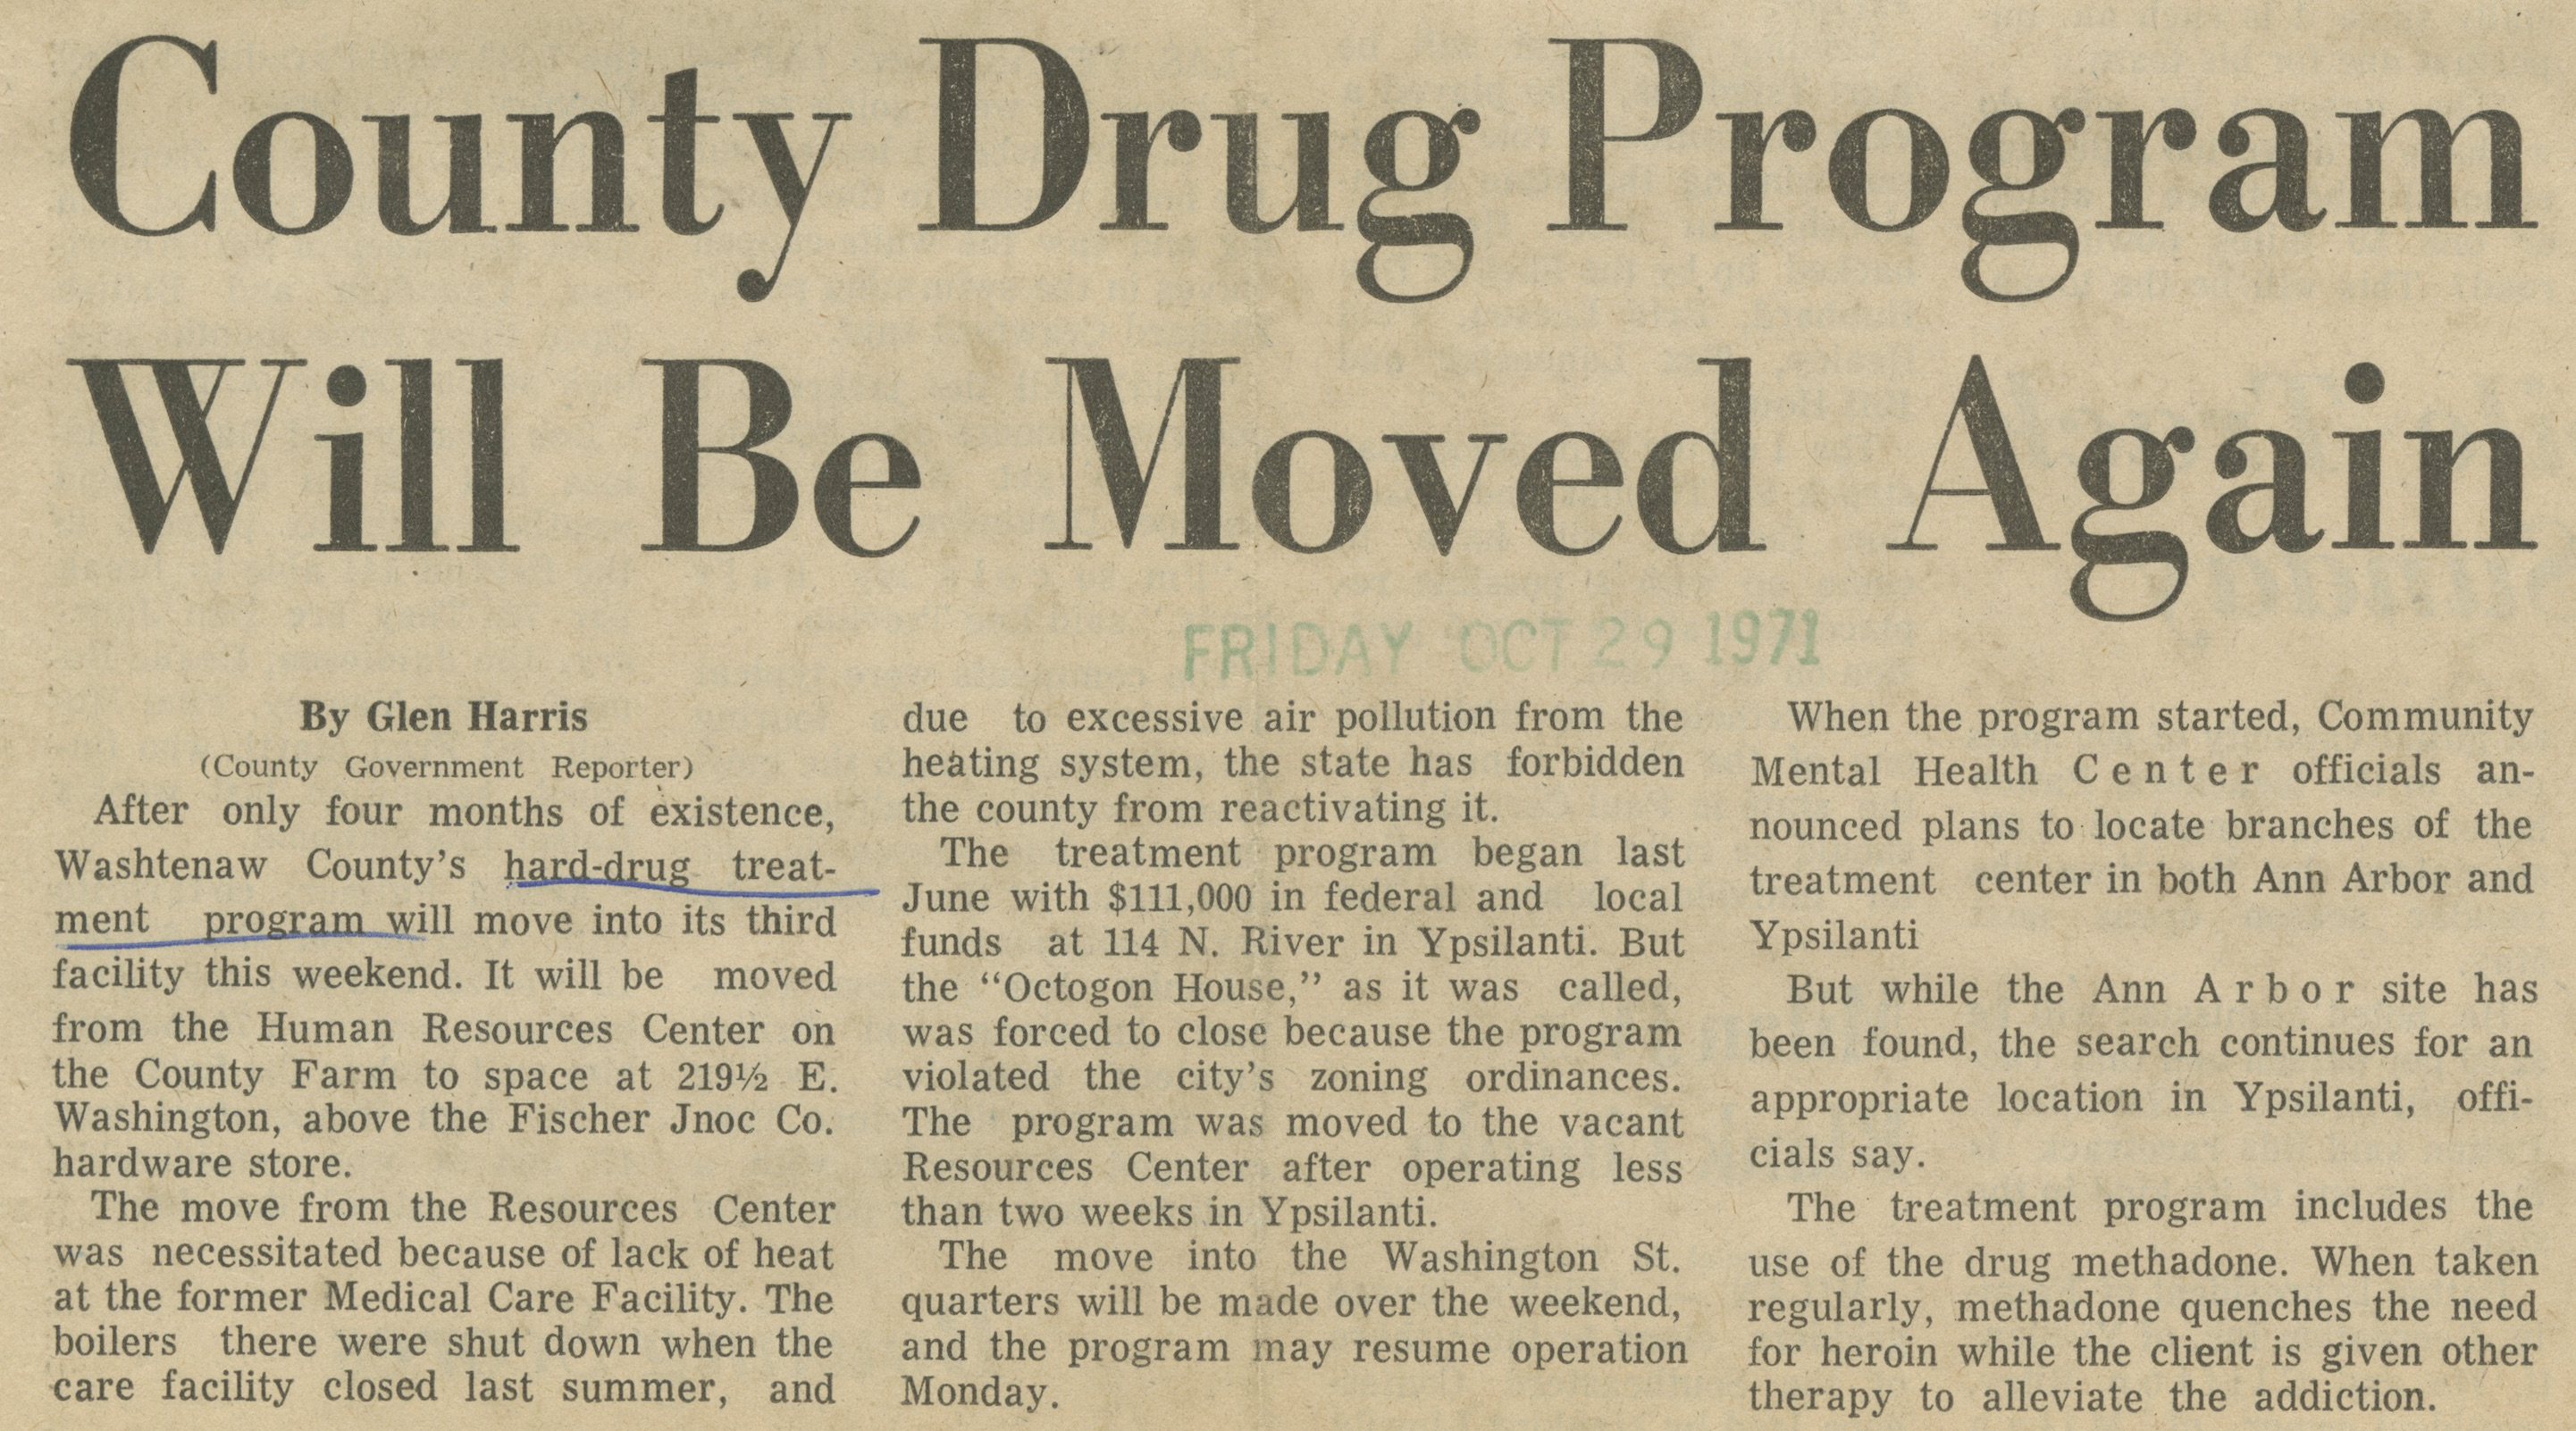 County Drug Program Will Be Moved Again image